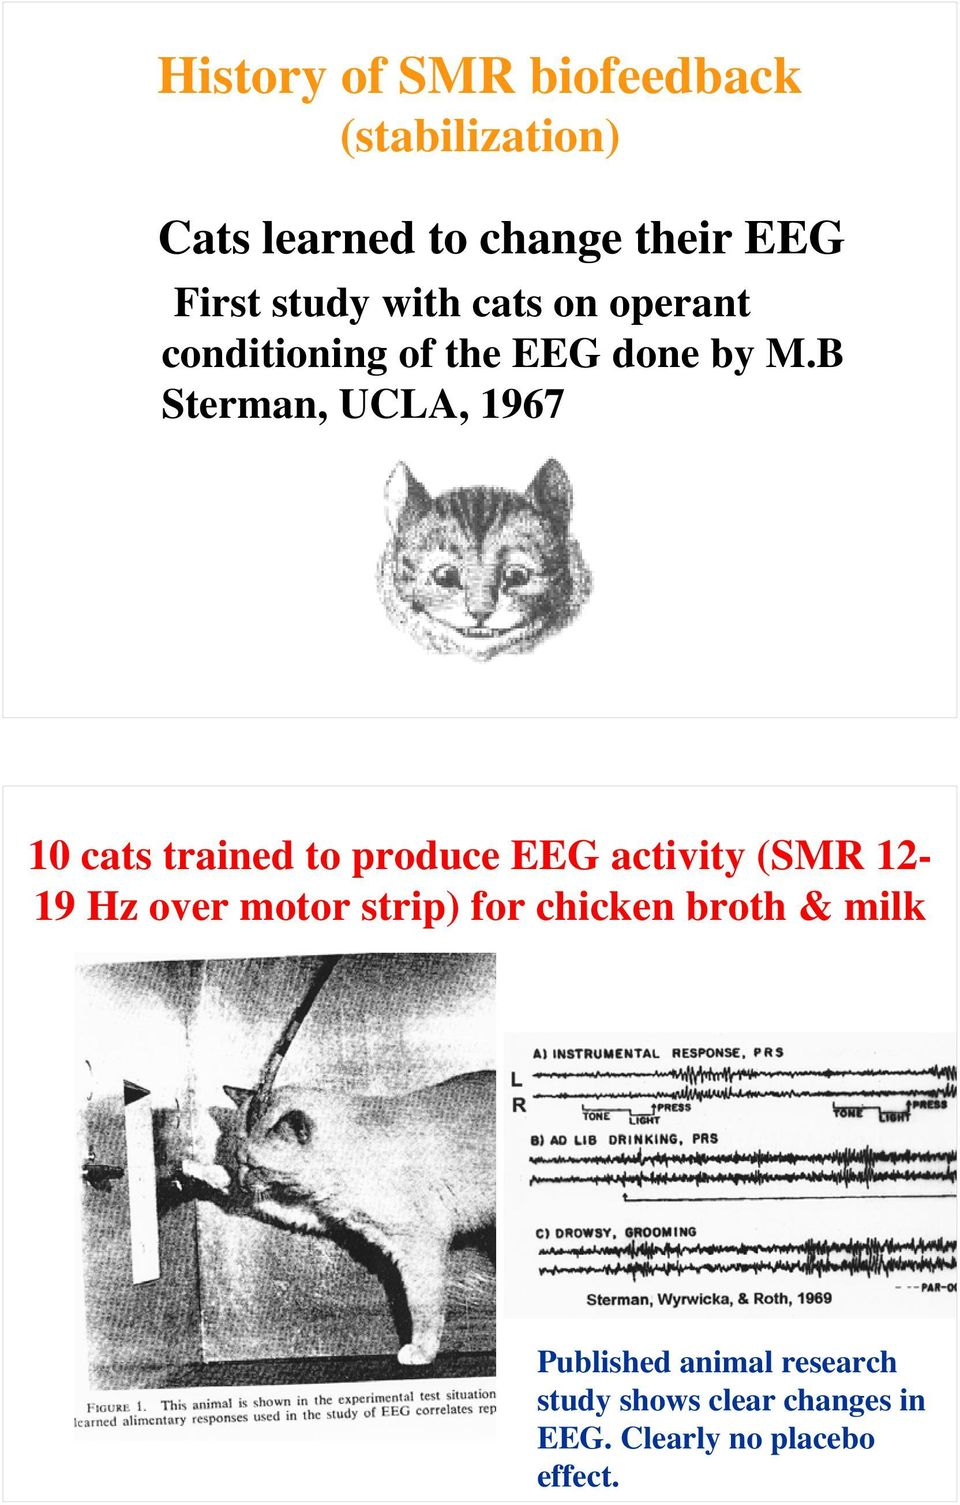 B Sterman, UCLA, 1967 10 cats trained to produce EEG activity (SMR 12-19 Hz over motor